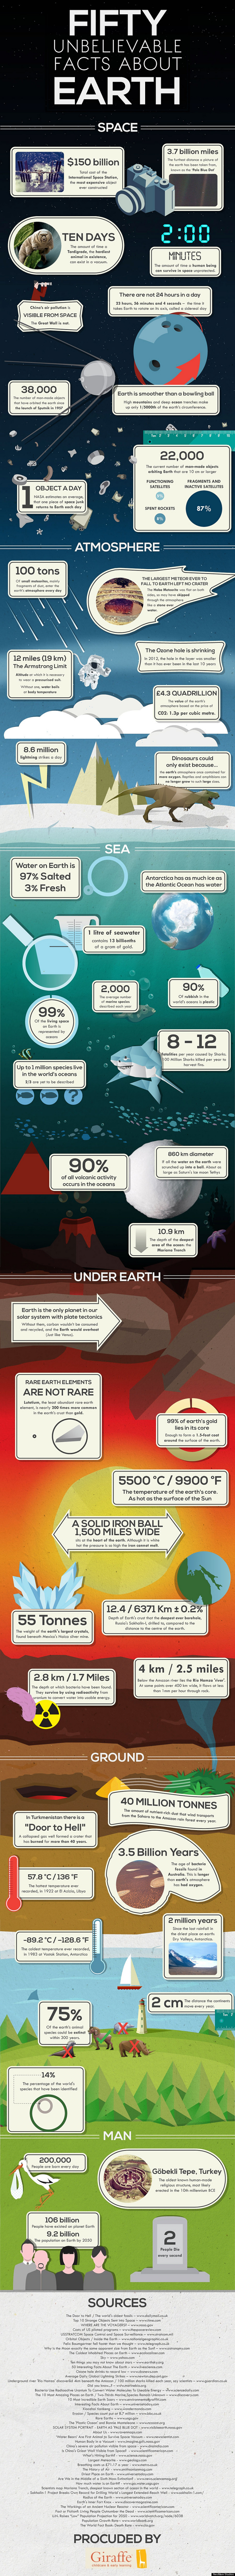 Facts-About-Our-Planet-Earth